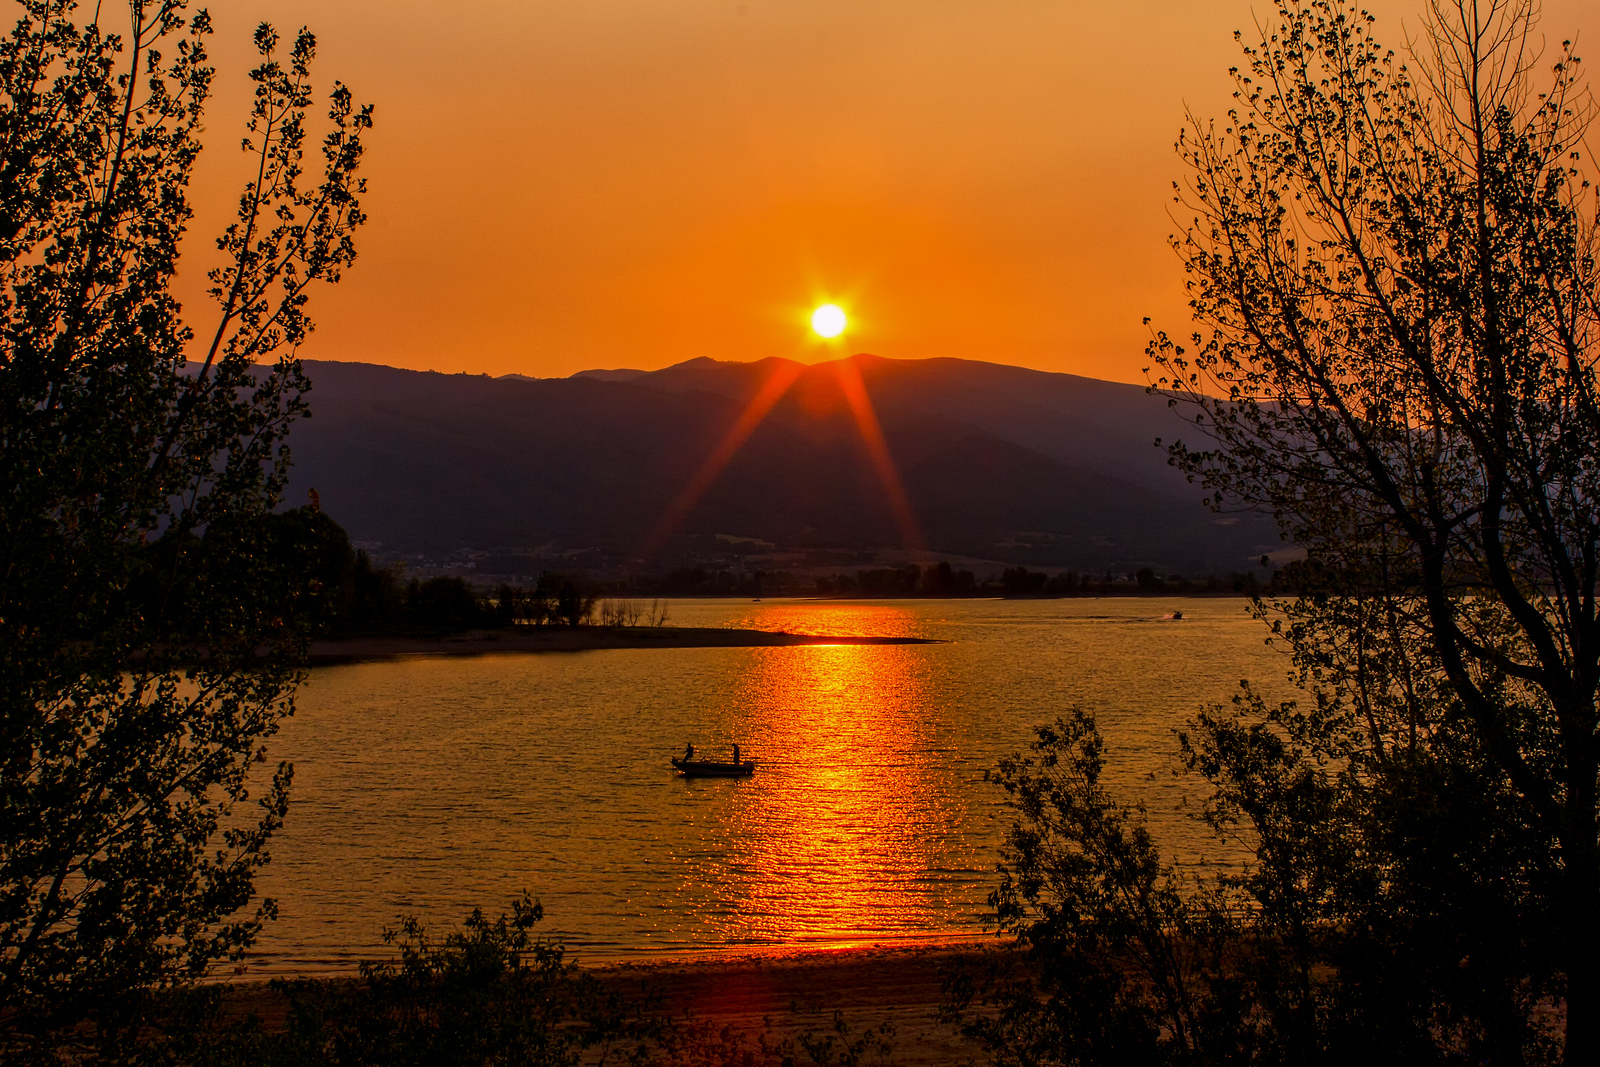 The sun setting over Pineview Reservoir near Huntsville